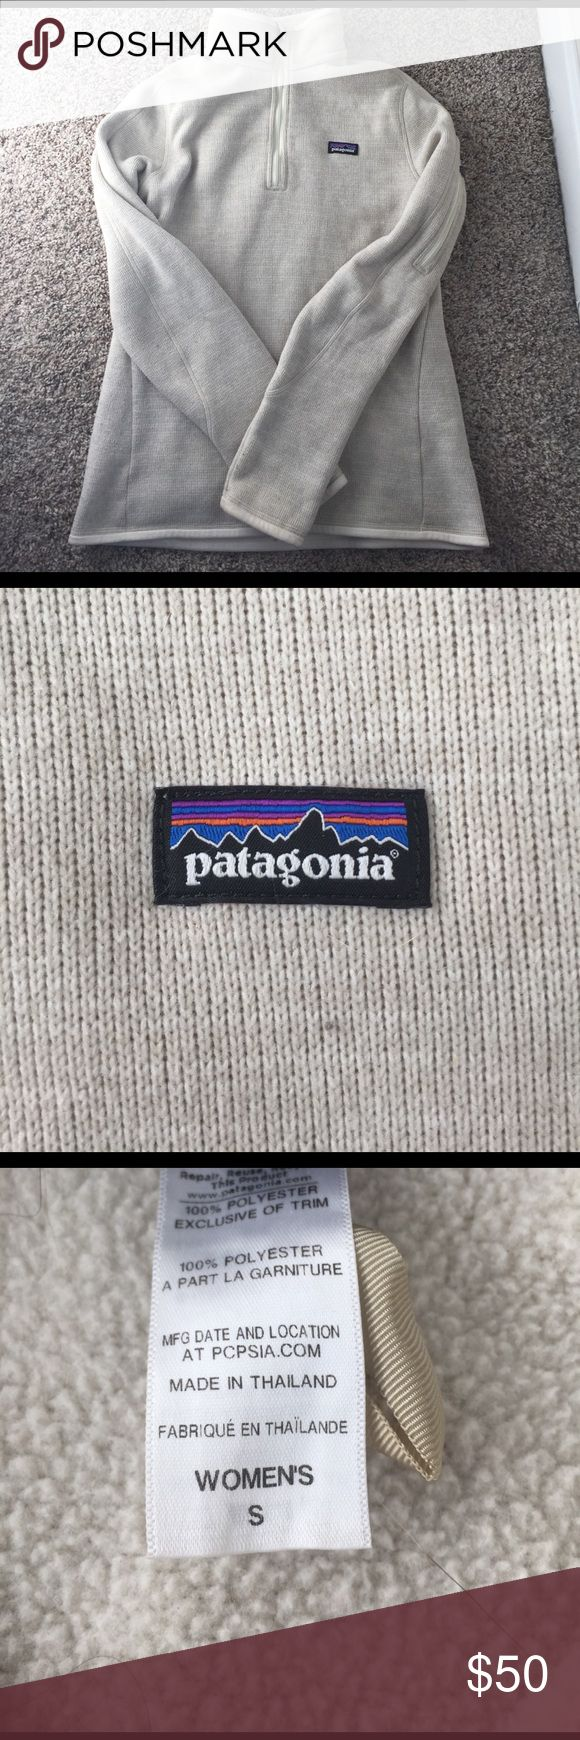 Patagonia Better Sweater Cream colored sweater women's size S. Some light piling on the sleeve shown in the last picture but overall good condition! Patagonia Sweaters